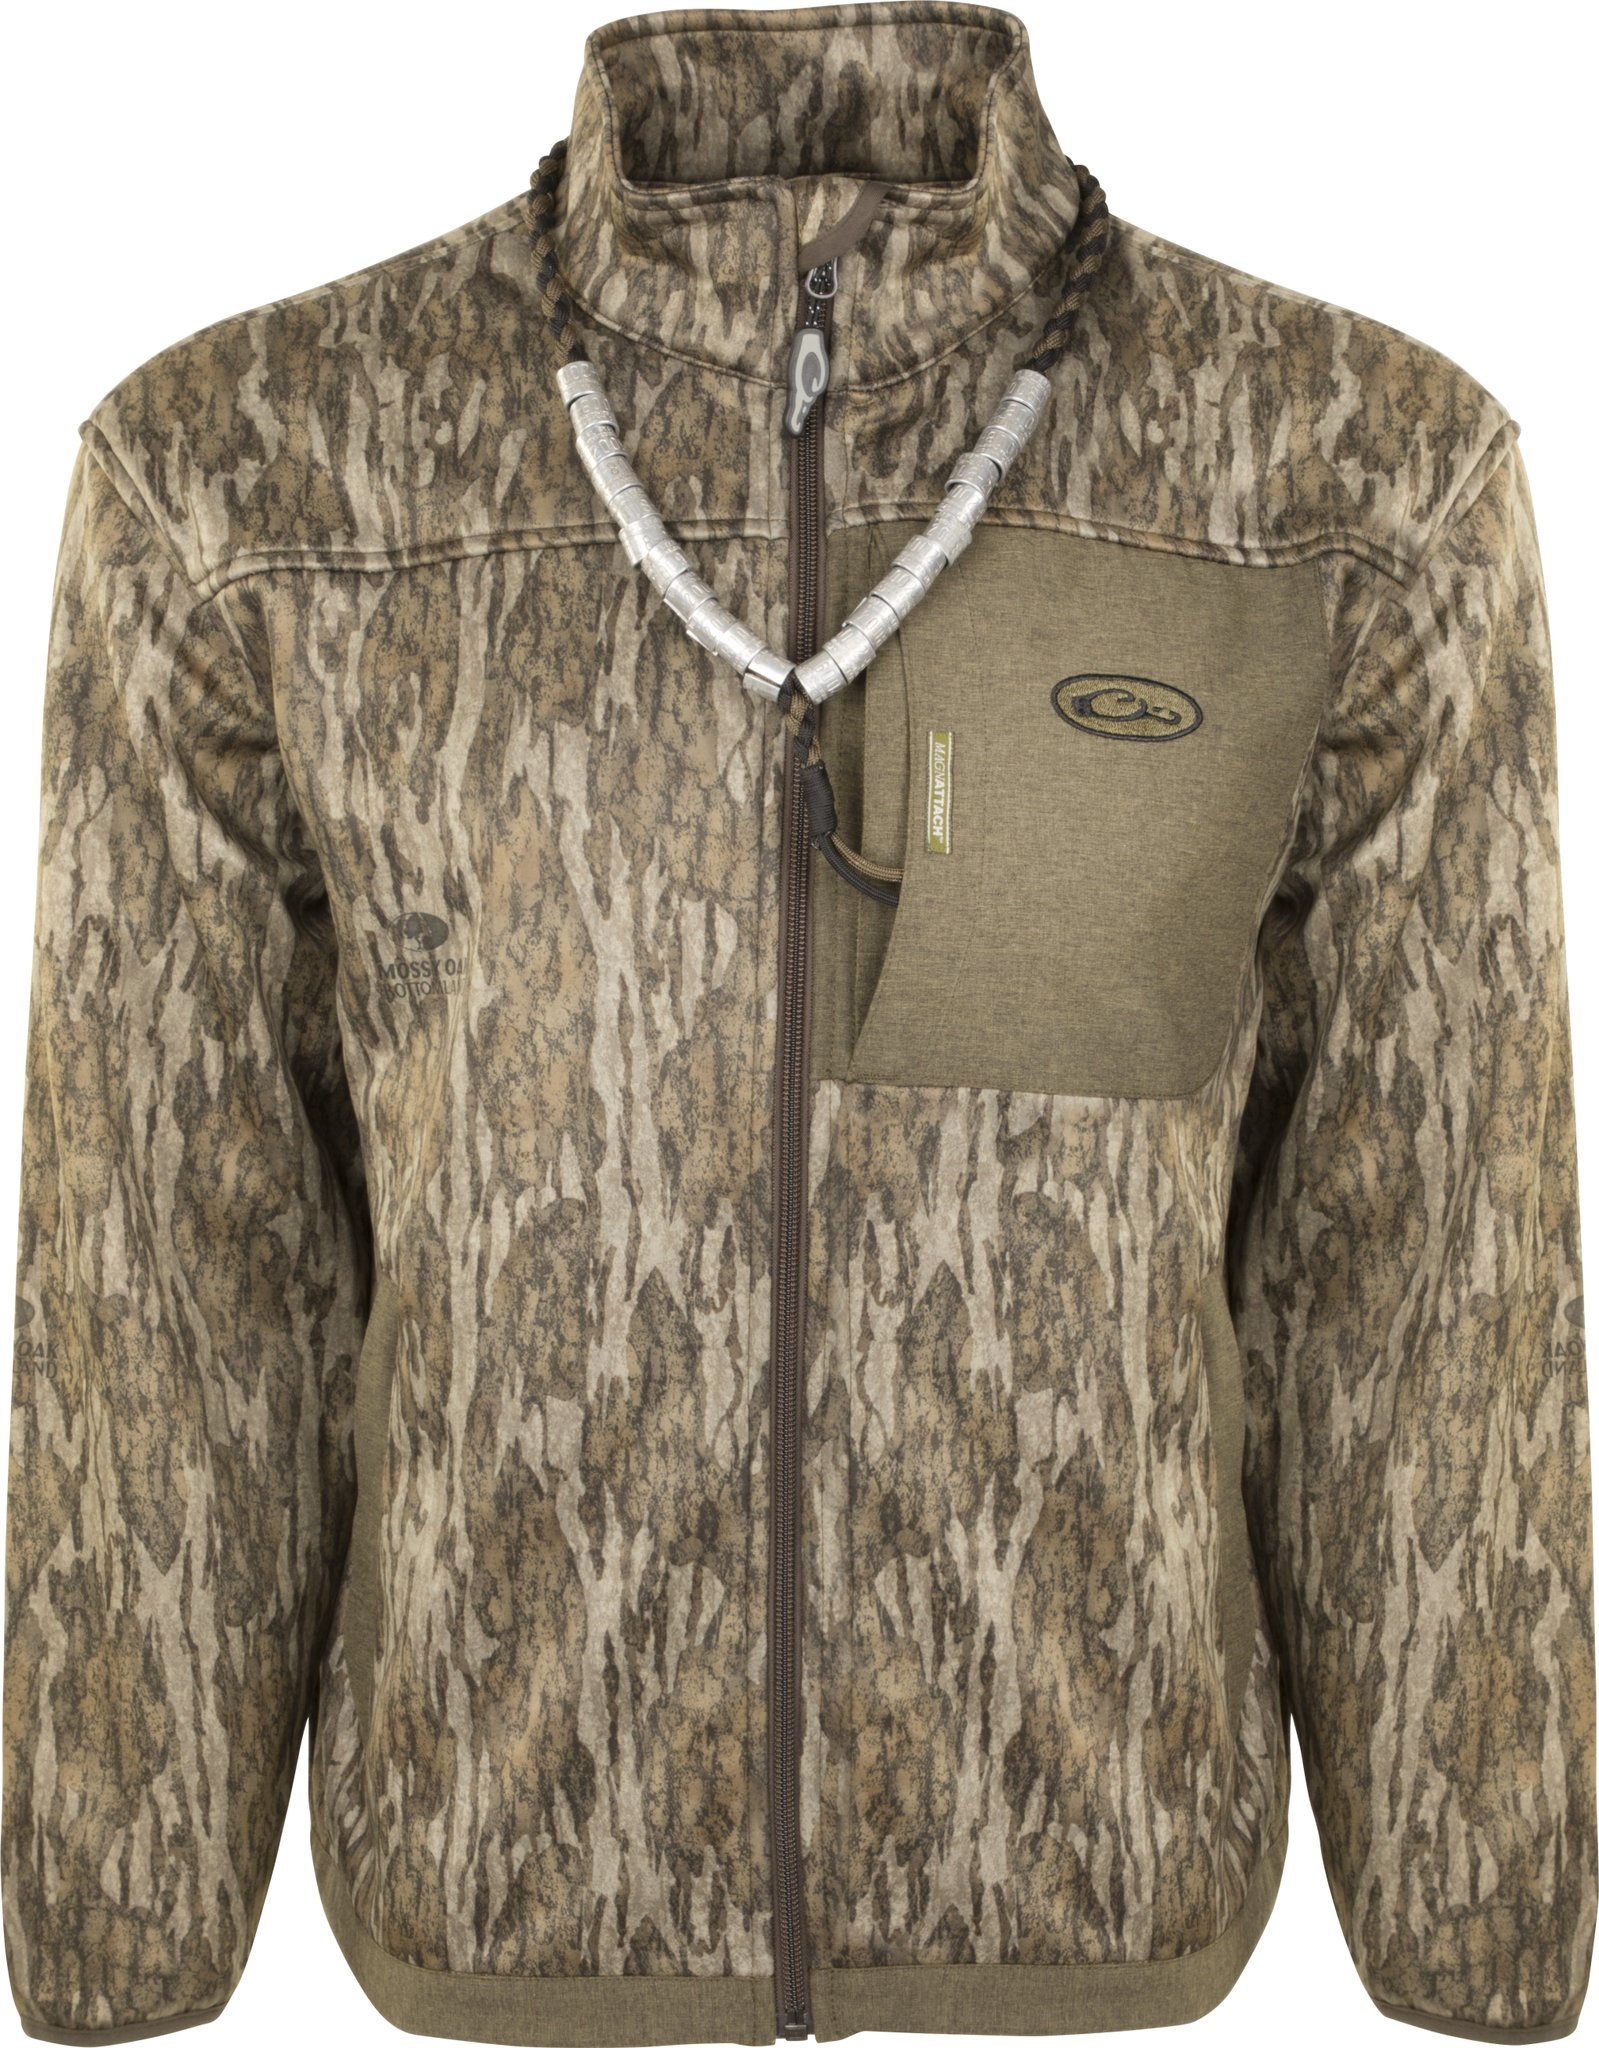 Drake MST Endurance Hybrid Liner Full Zip (Bottomland, Small)